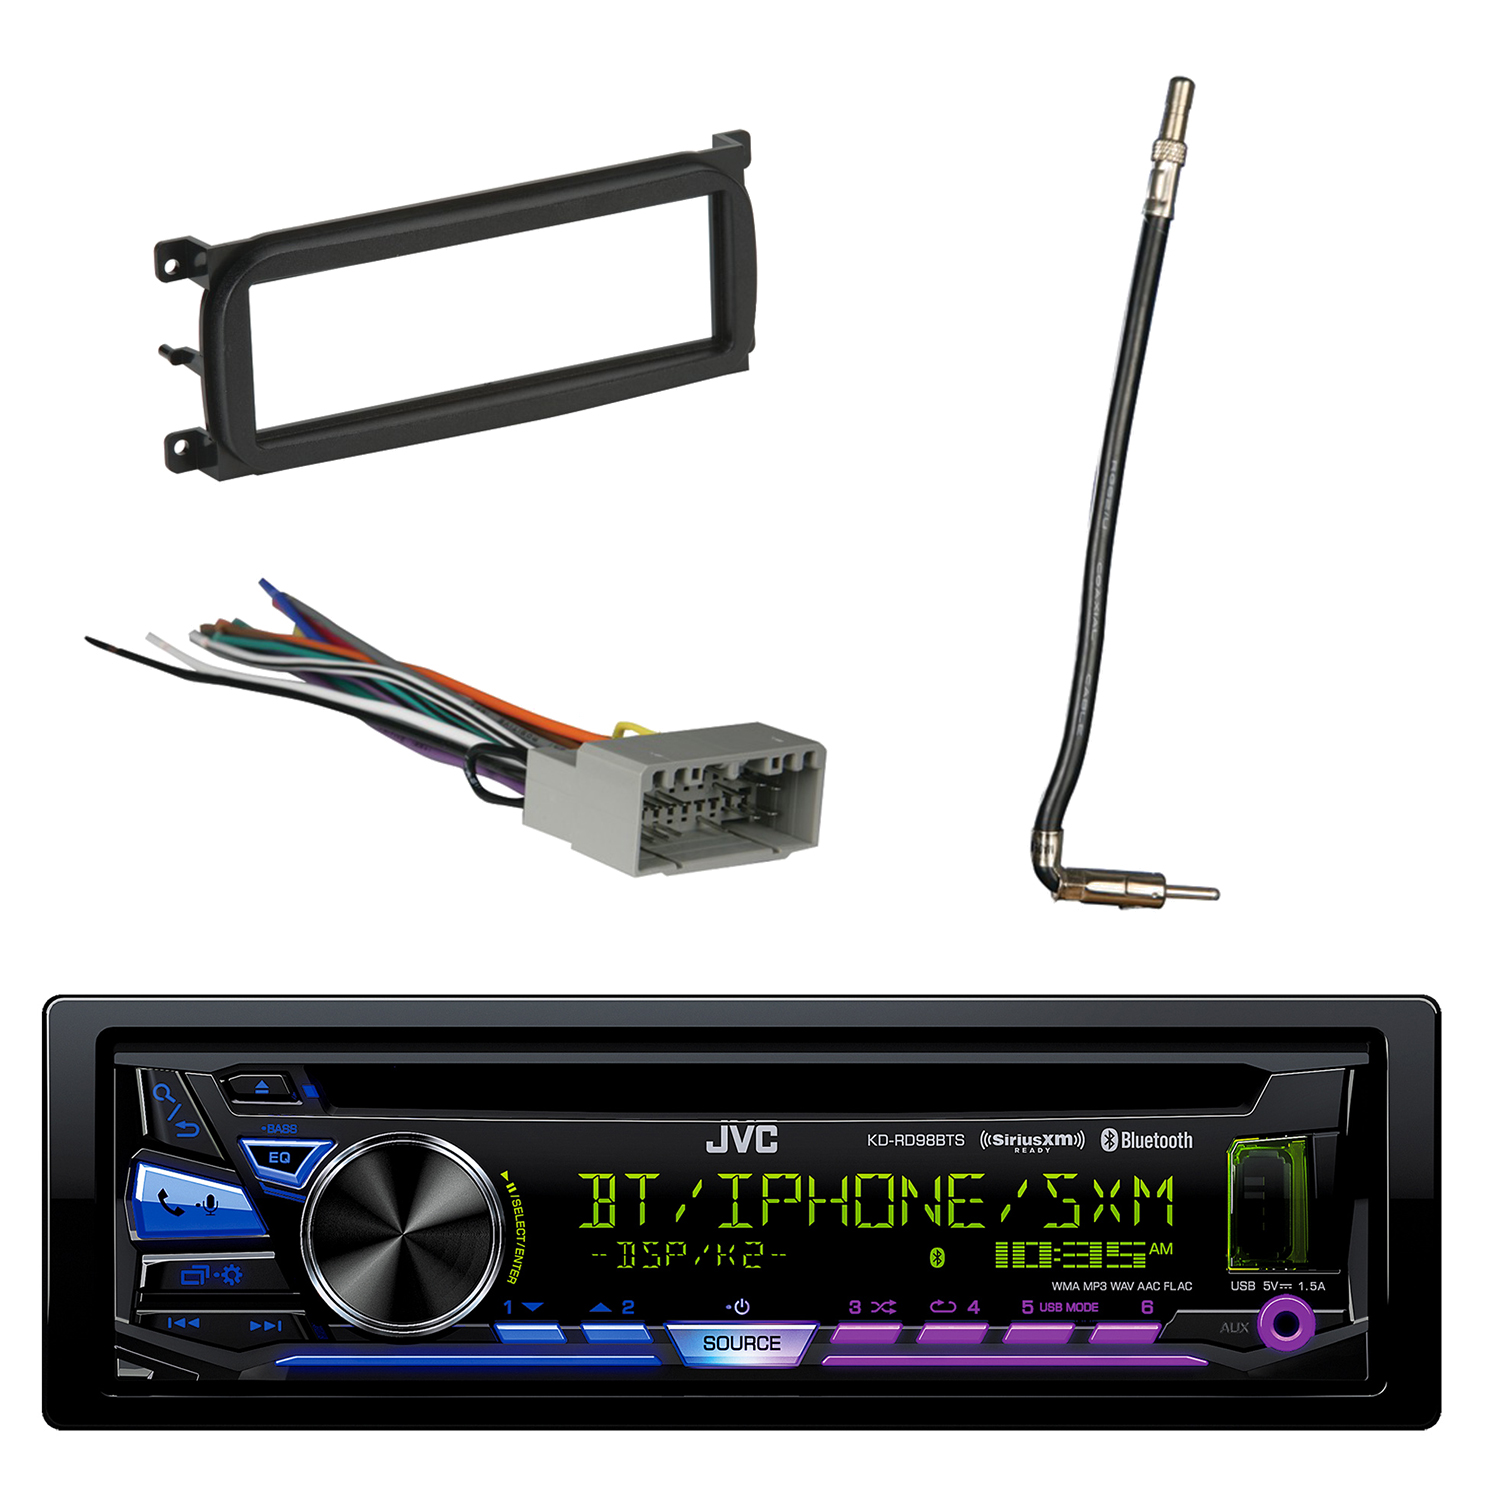 Metra Car Audio Wire Harness Free Download Stereo Jvc 1 Din Bluetooth Cd Am Fm With Dash Kit For Chry Solidsignal Com Crutchfield Wiring